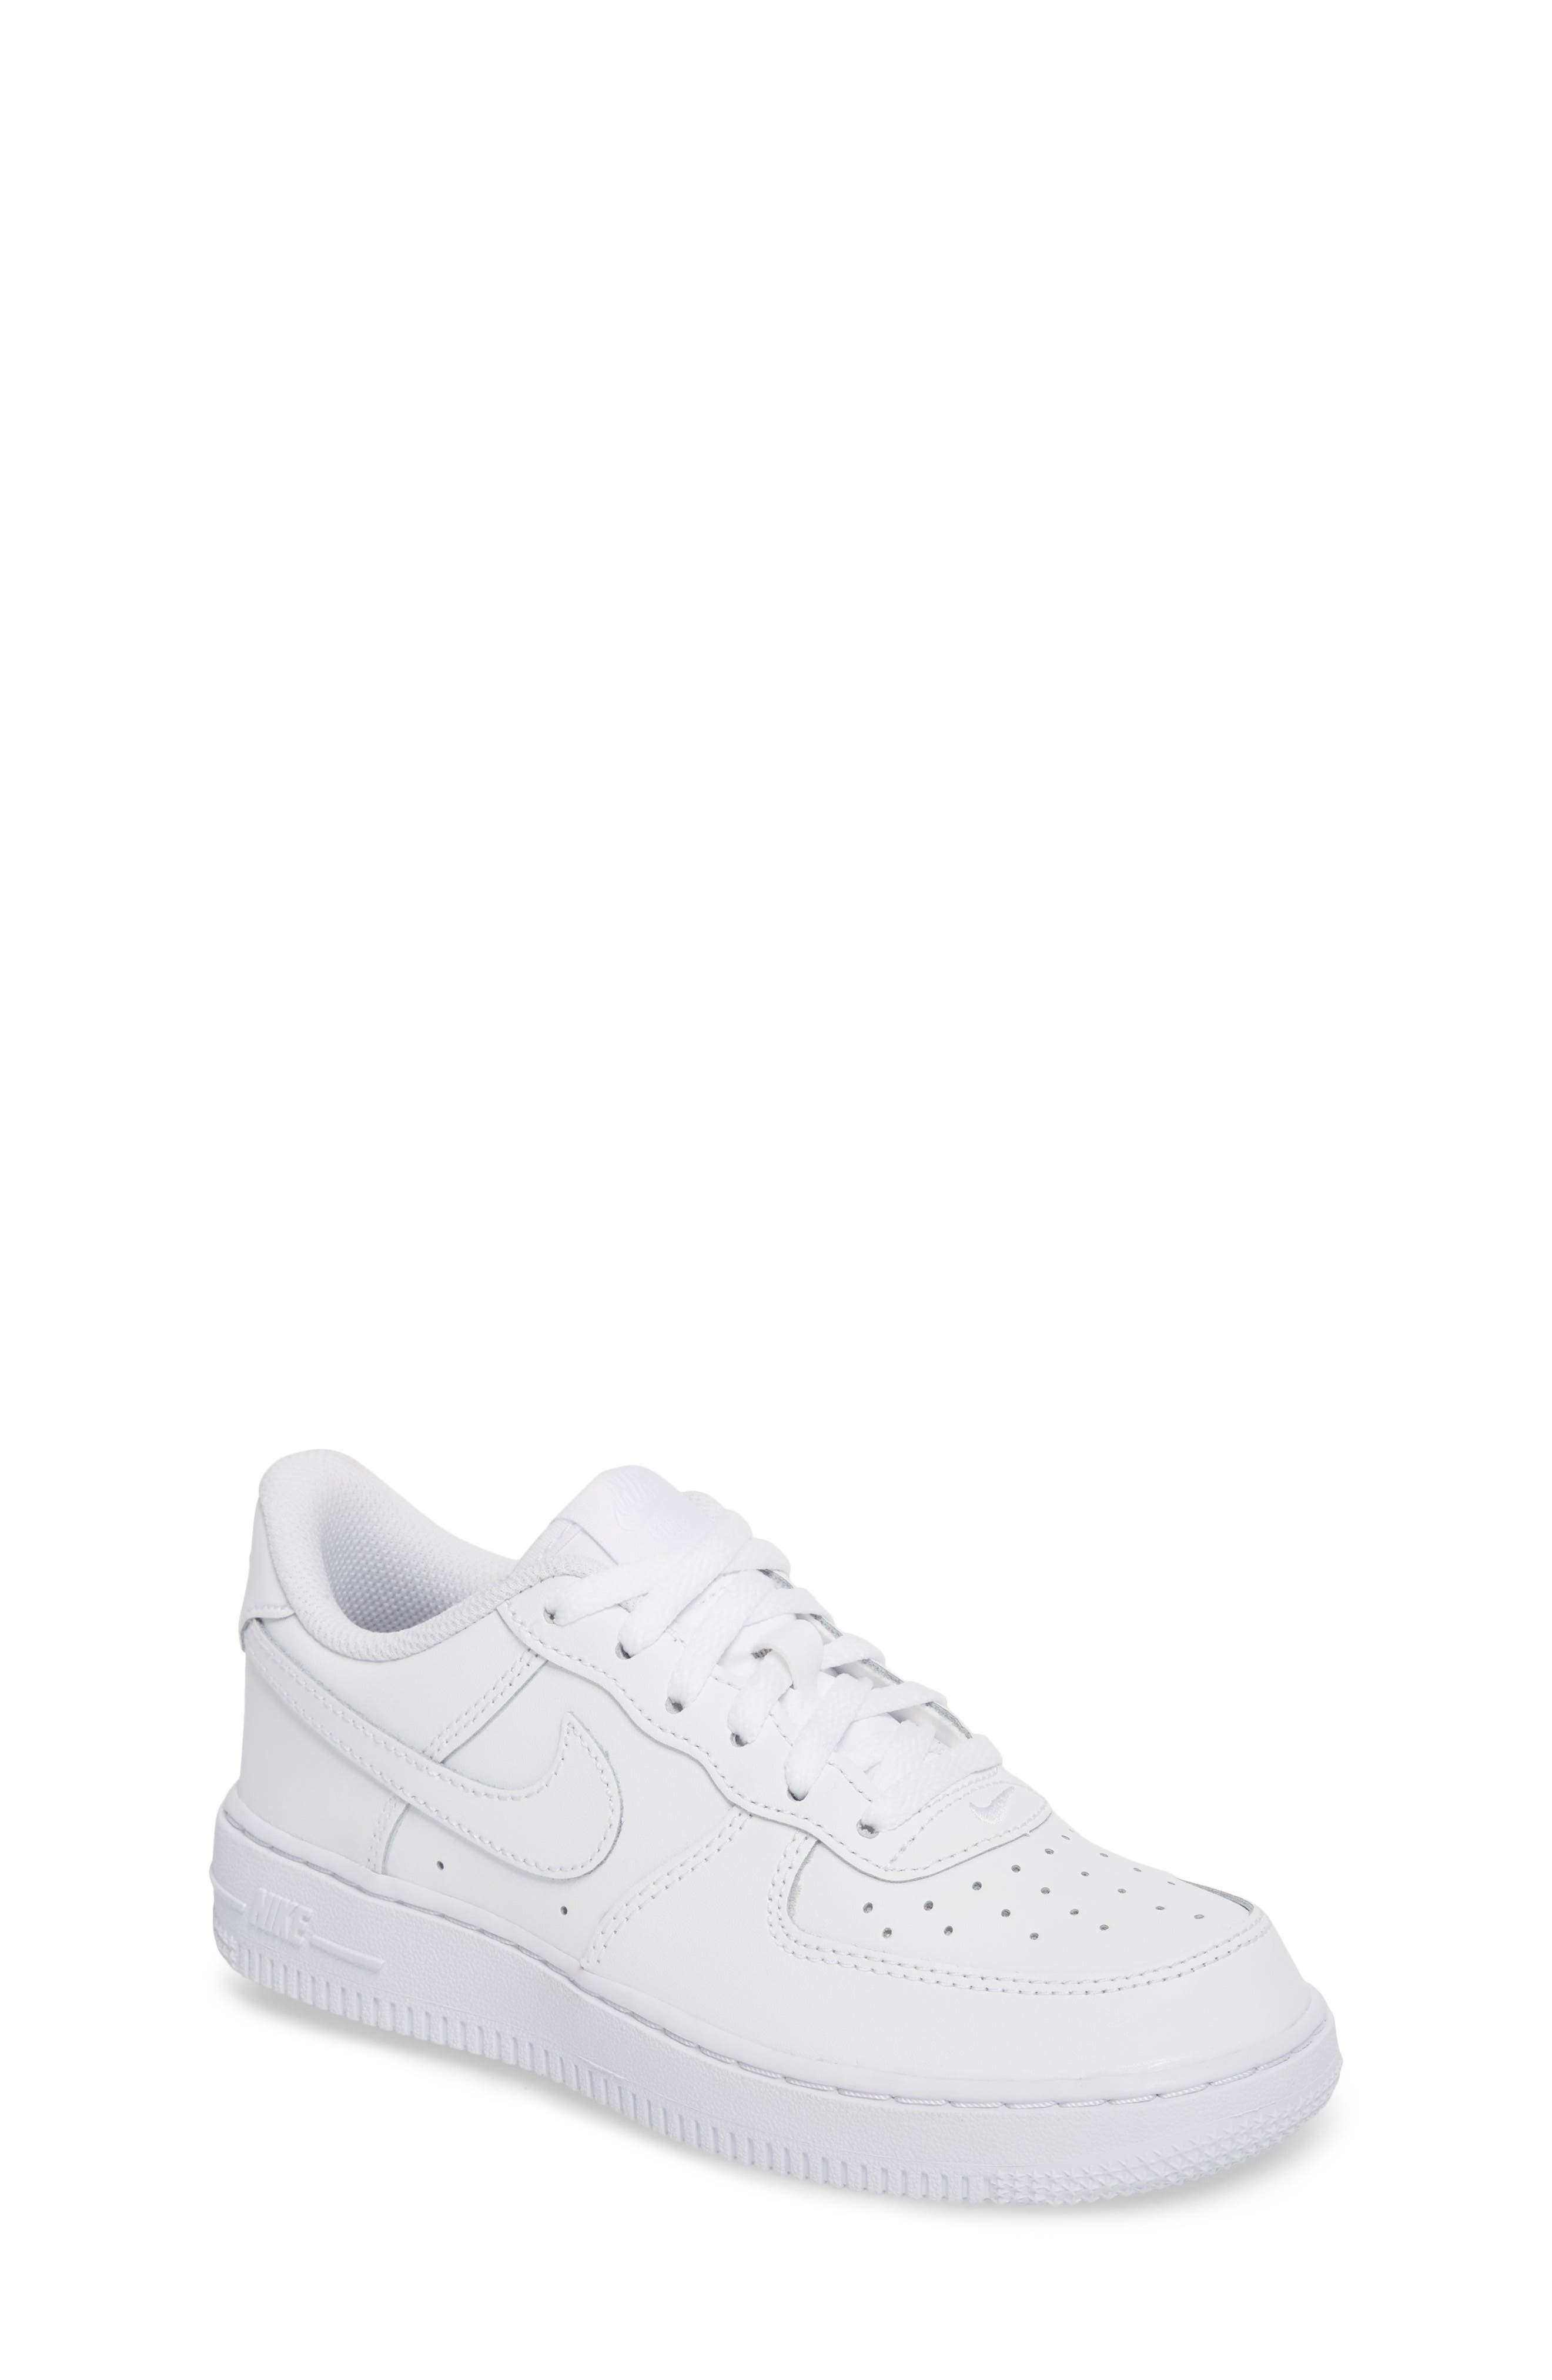 Air Force 1 Sneaker,                             Main thumbnail 1, color,                             WHITE/ WHITE